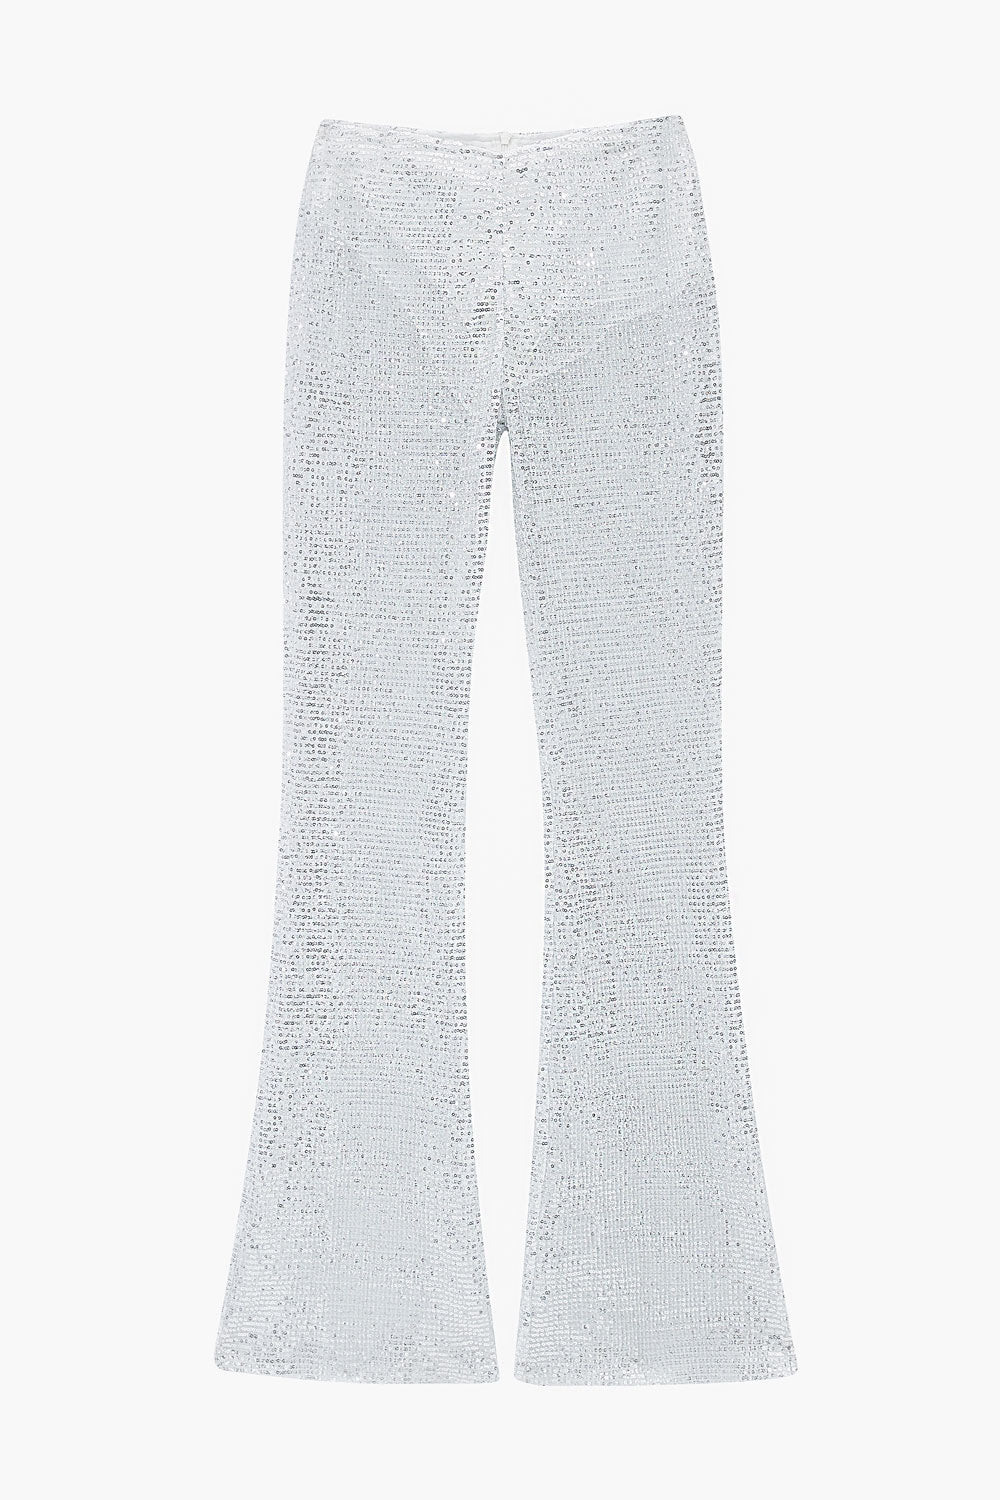 Sheer Sequin Bell Bottom Pants